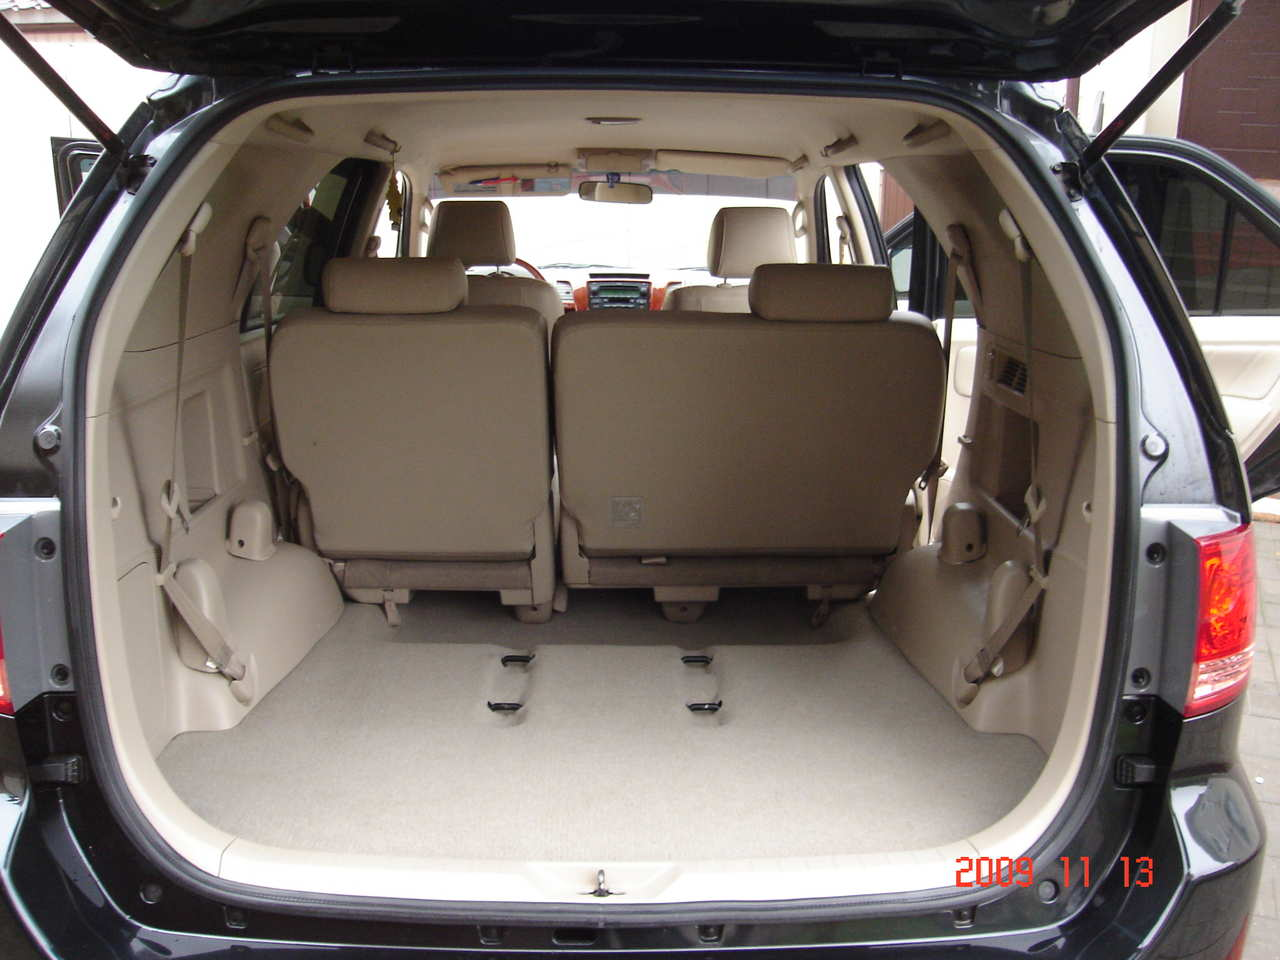 Japanese Used Cars For Sale >> 2008 Toyota Fortuner specs, Engine size 3.0l., Fuel type Diesel, Transmission Gearbox Automatic